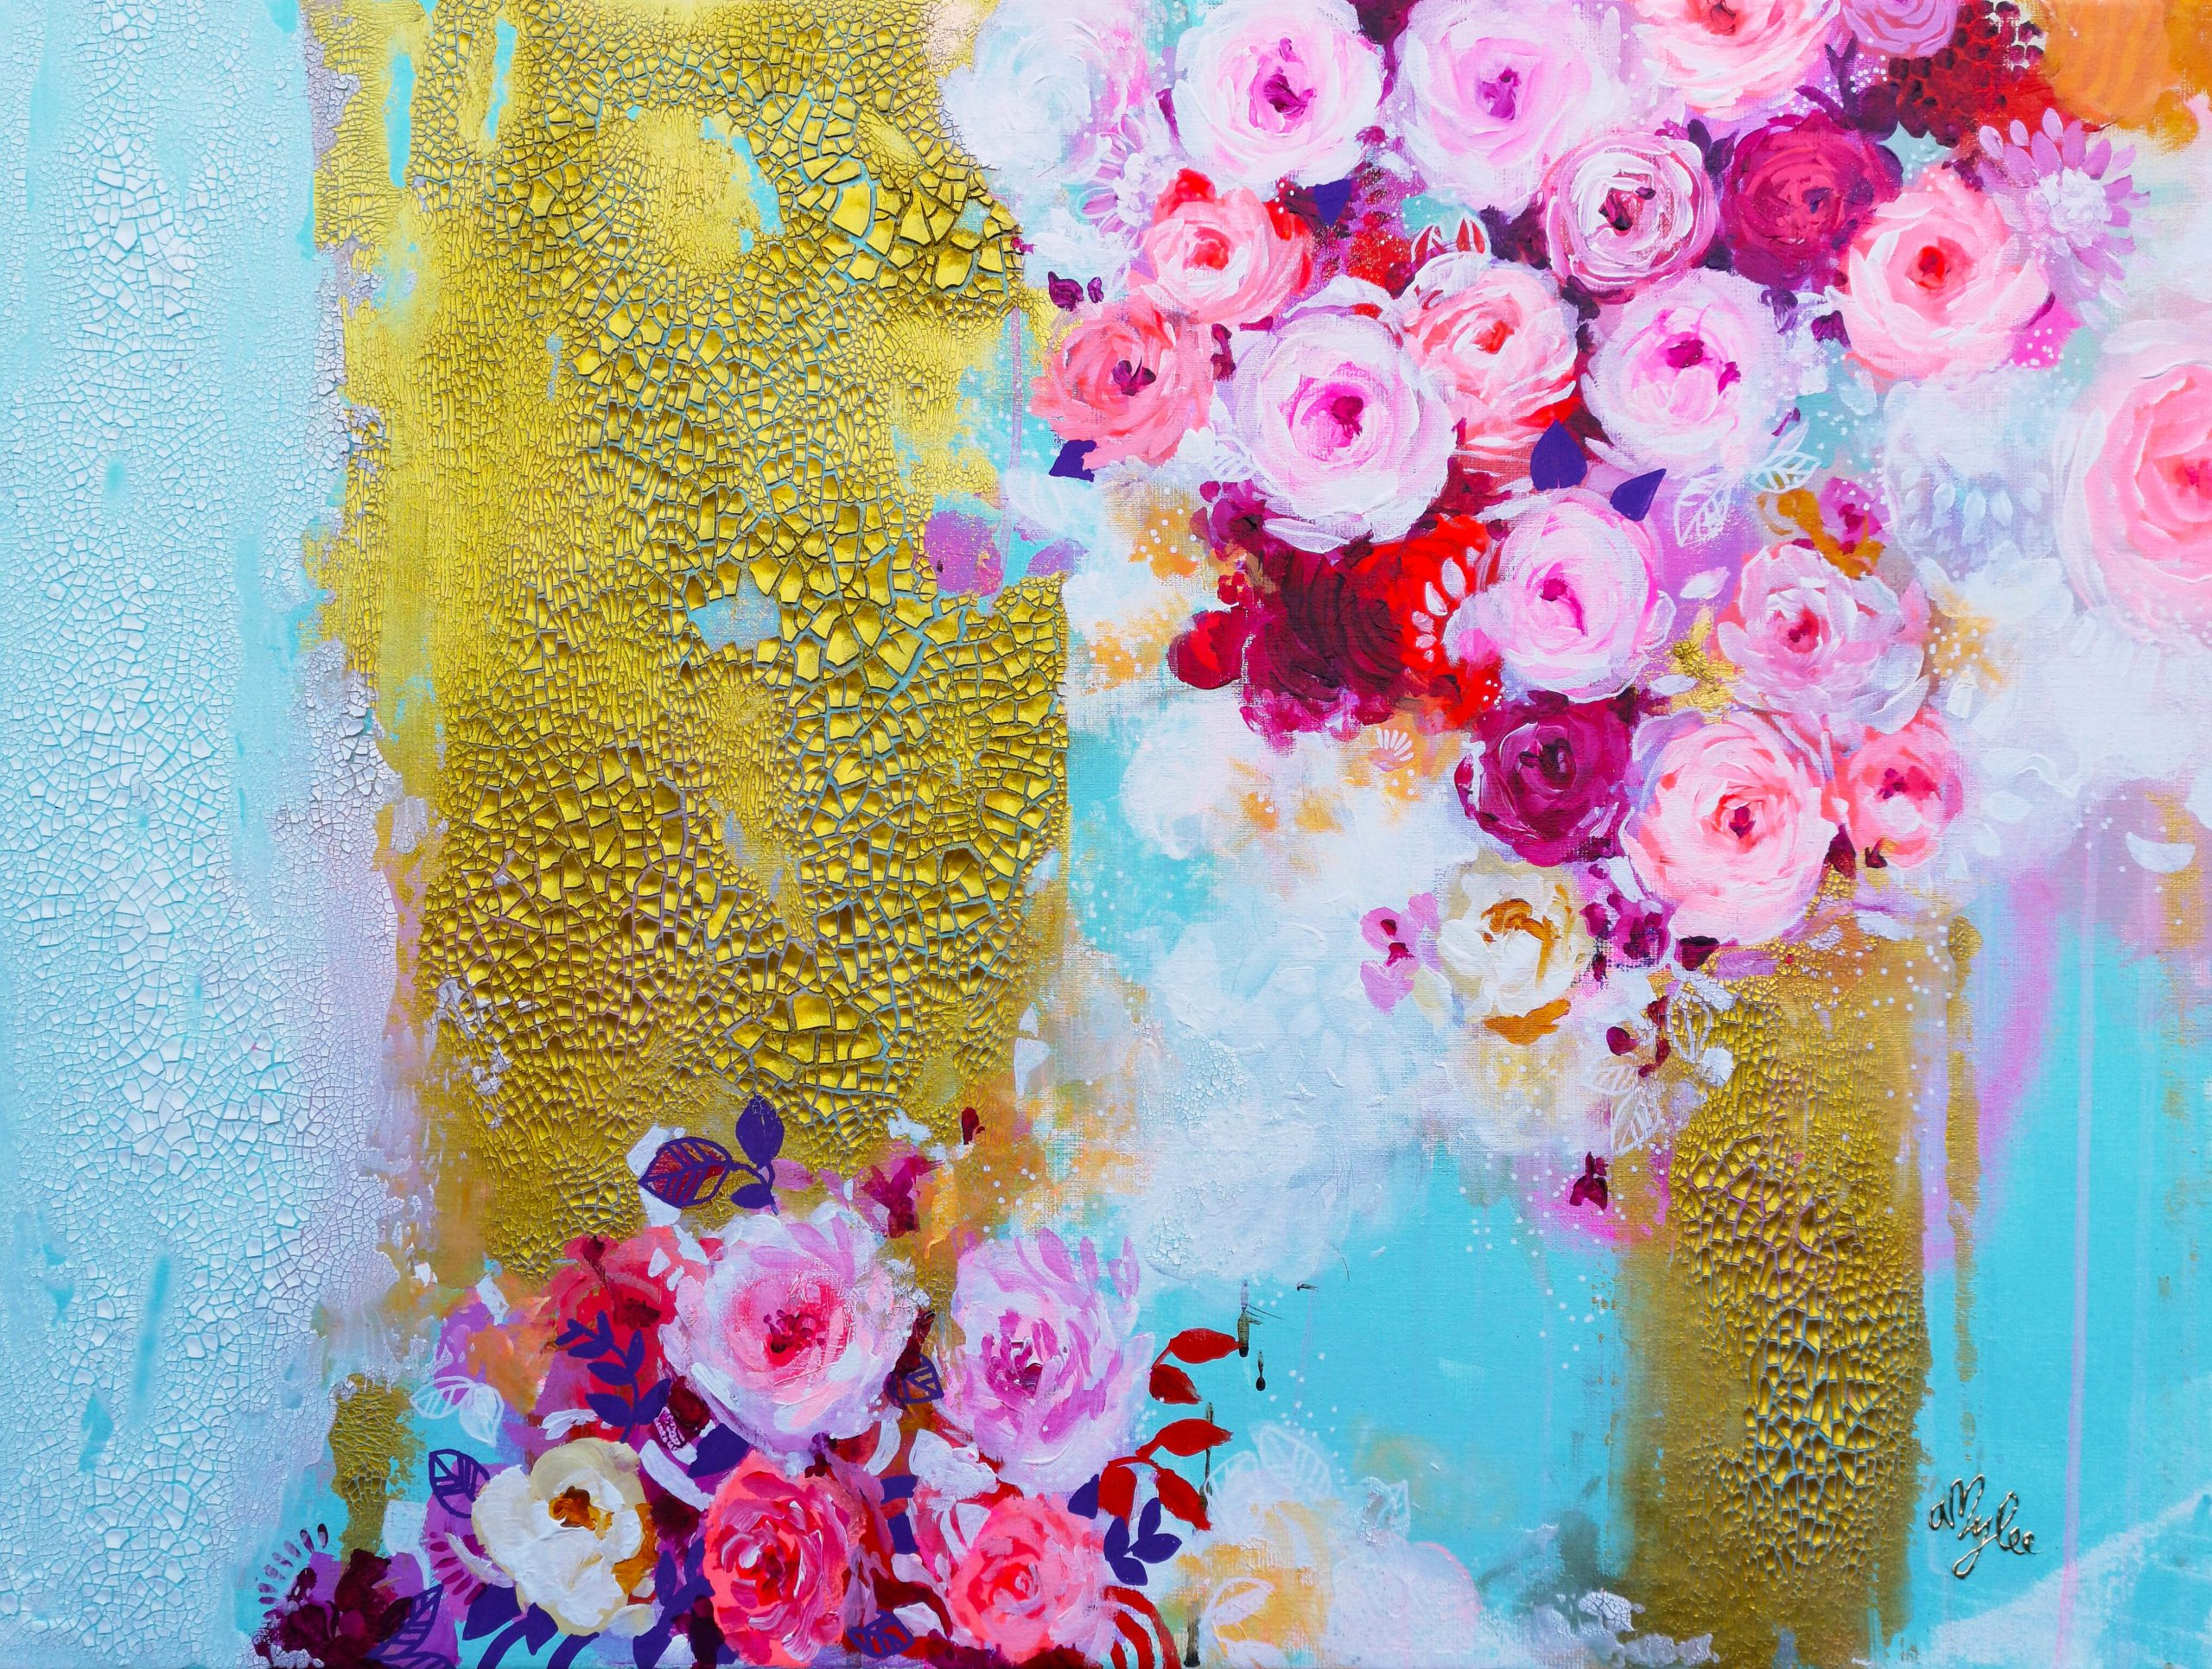 Flower Fountain - 80 x 60 cm